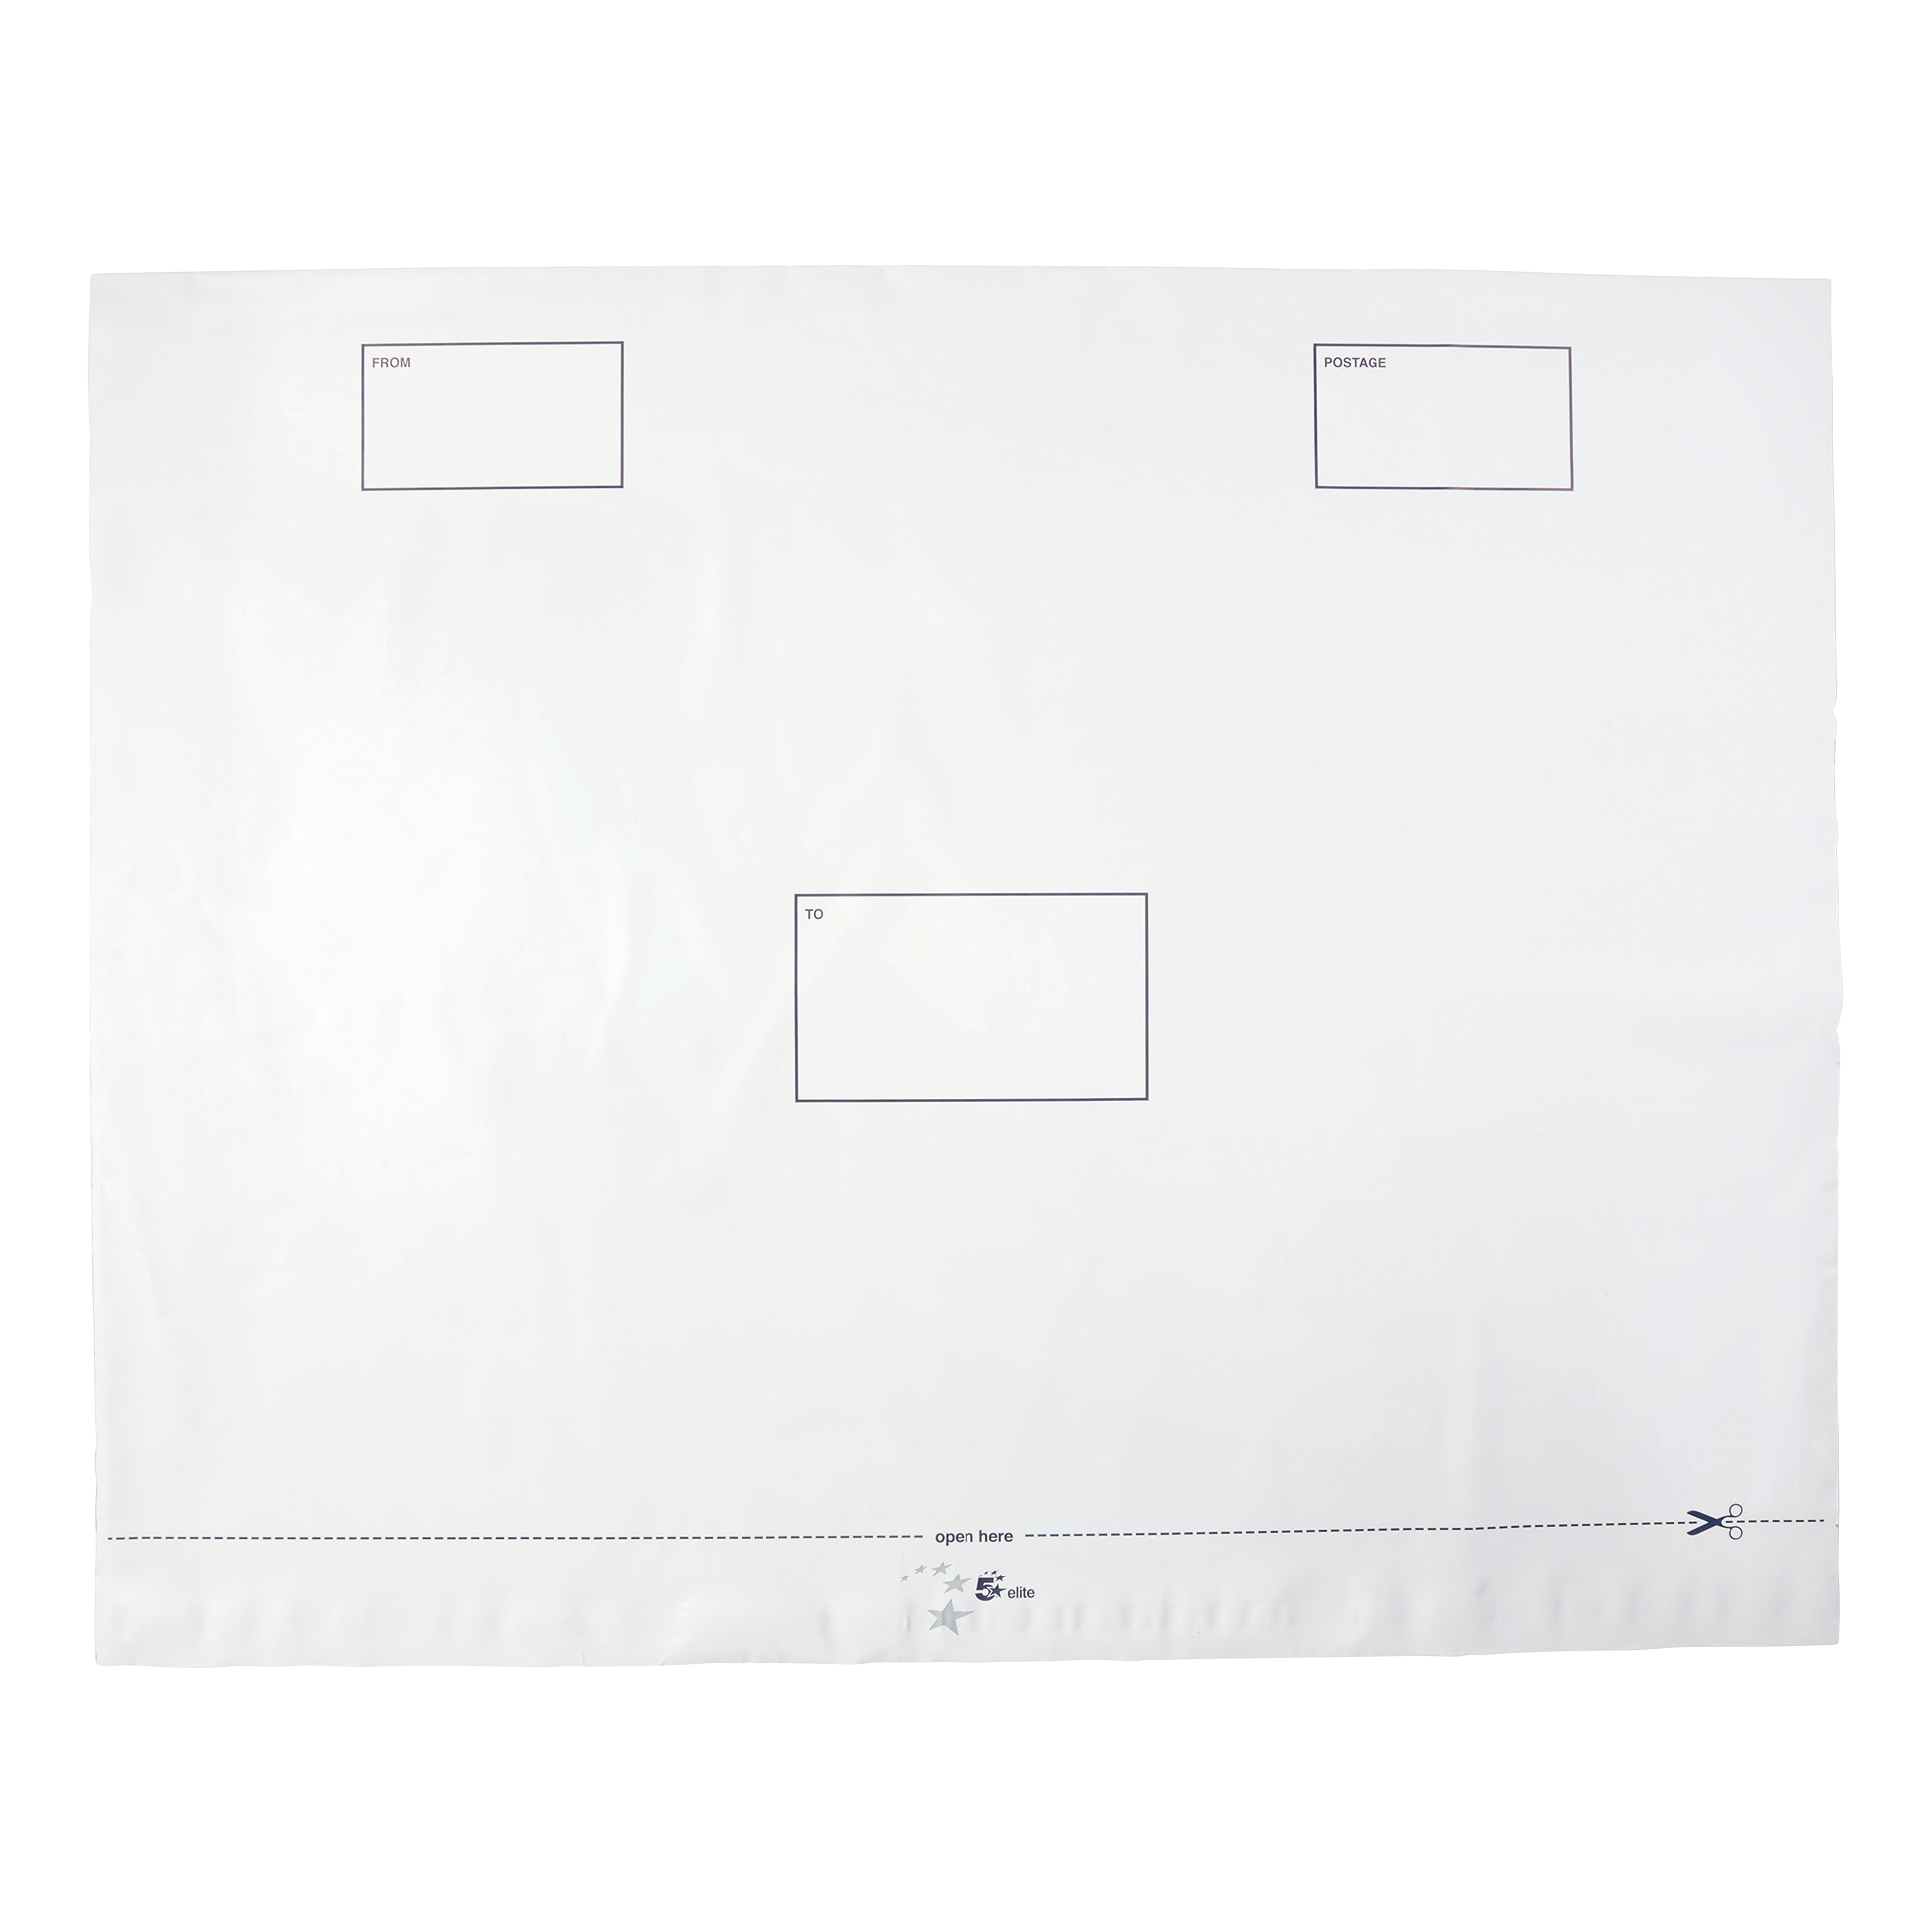 Polythene Envelopes 5 Star Elite Envelopes ExtraStrong Waterproof Polythene Peel & Seal Opaque 600x430mm&50mm Flap [Pack 100]